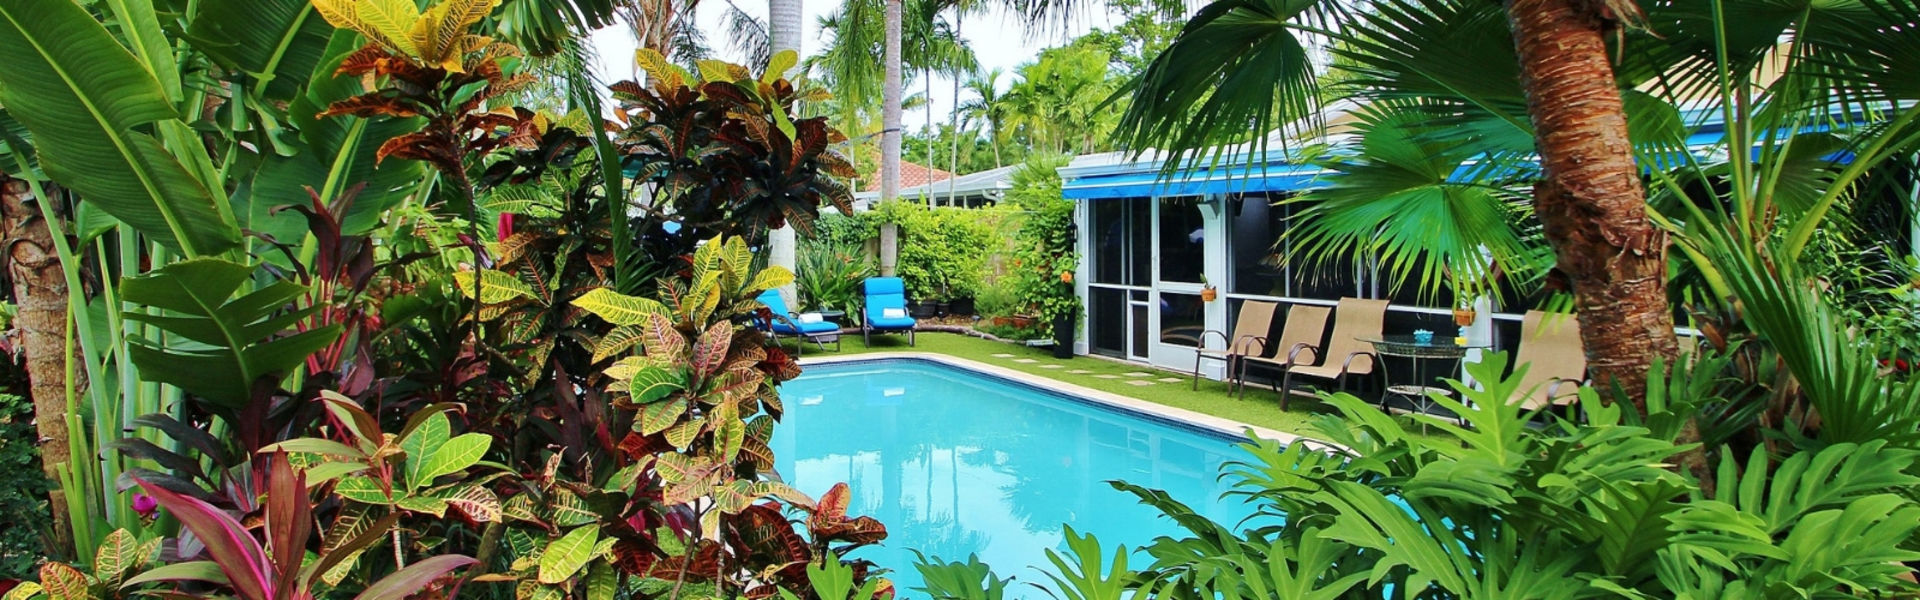 POINSETTIA HEIGHTS , 3 BED /2 BATH, TROPICAL PARADISE POOL HOME FOR SALE